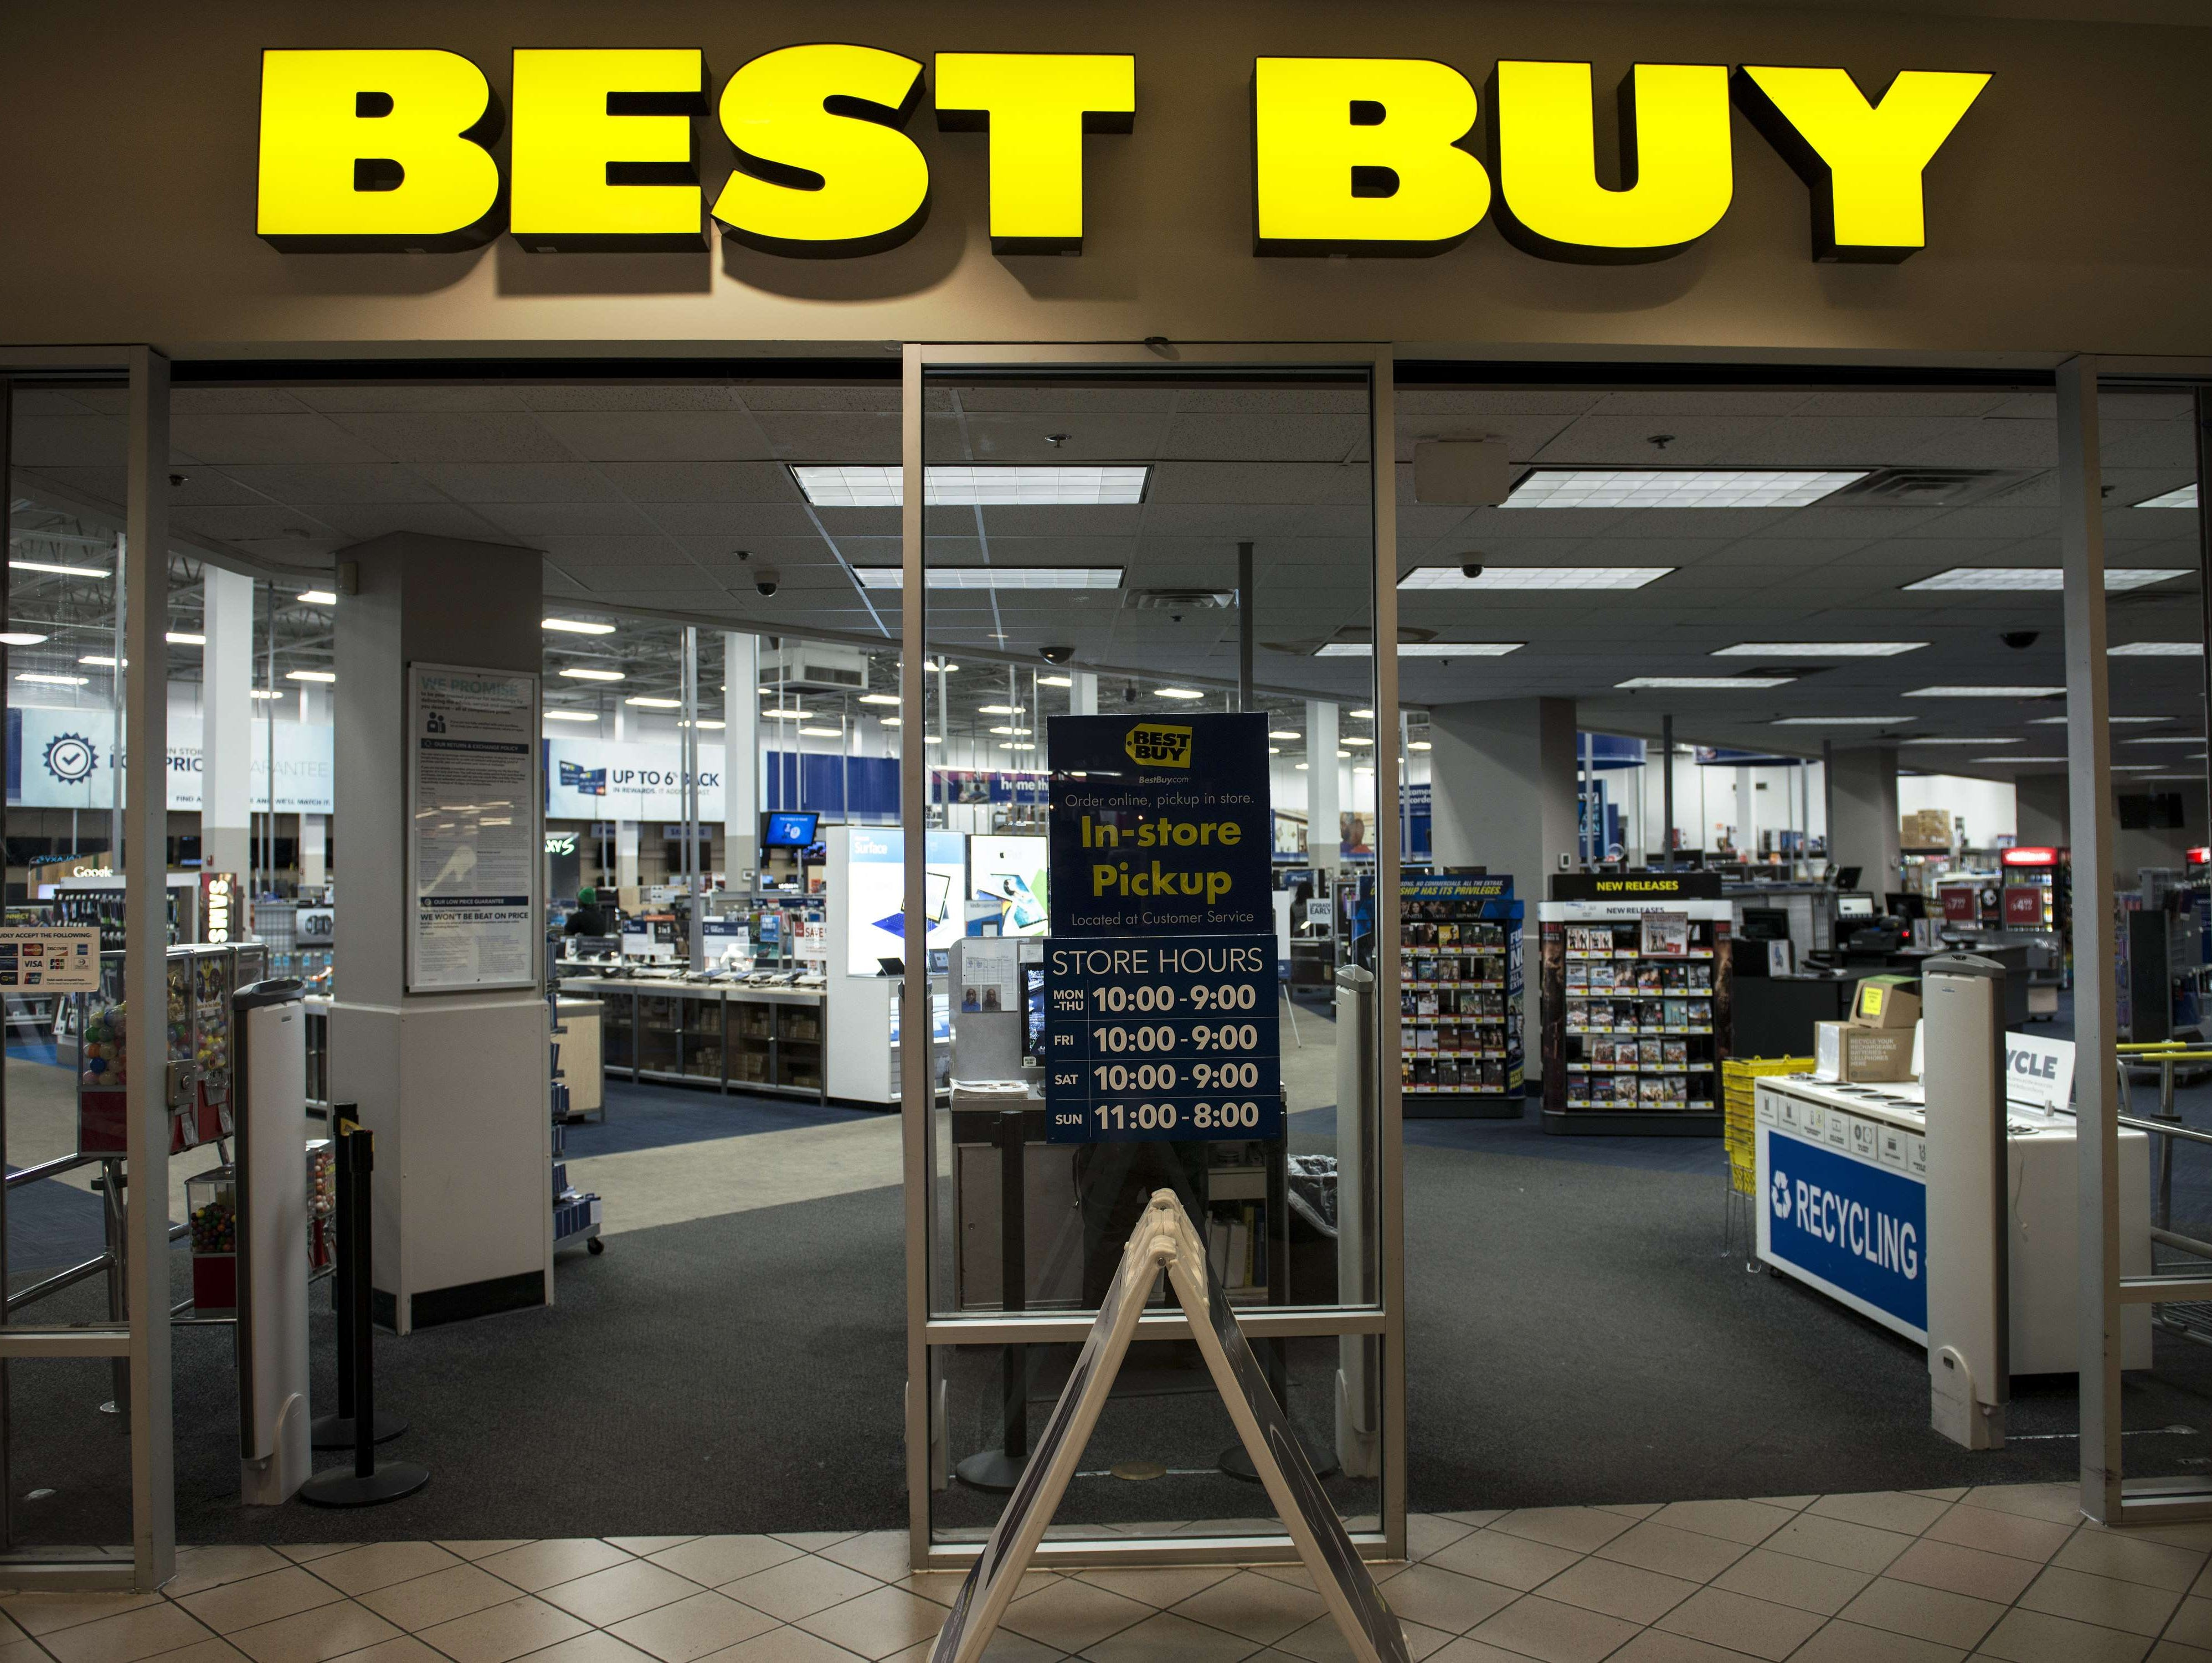 This September 25, 2014 file photo shows an entrance to a Best Buy store in Arlington, Virginia.   US home appliance giant Best Buy is leaving the Chinese market, selling its Five Star subsidiary there to a local group, the company said December 4, 2